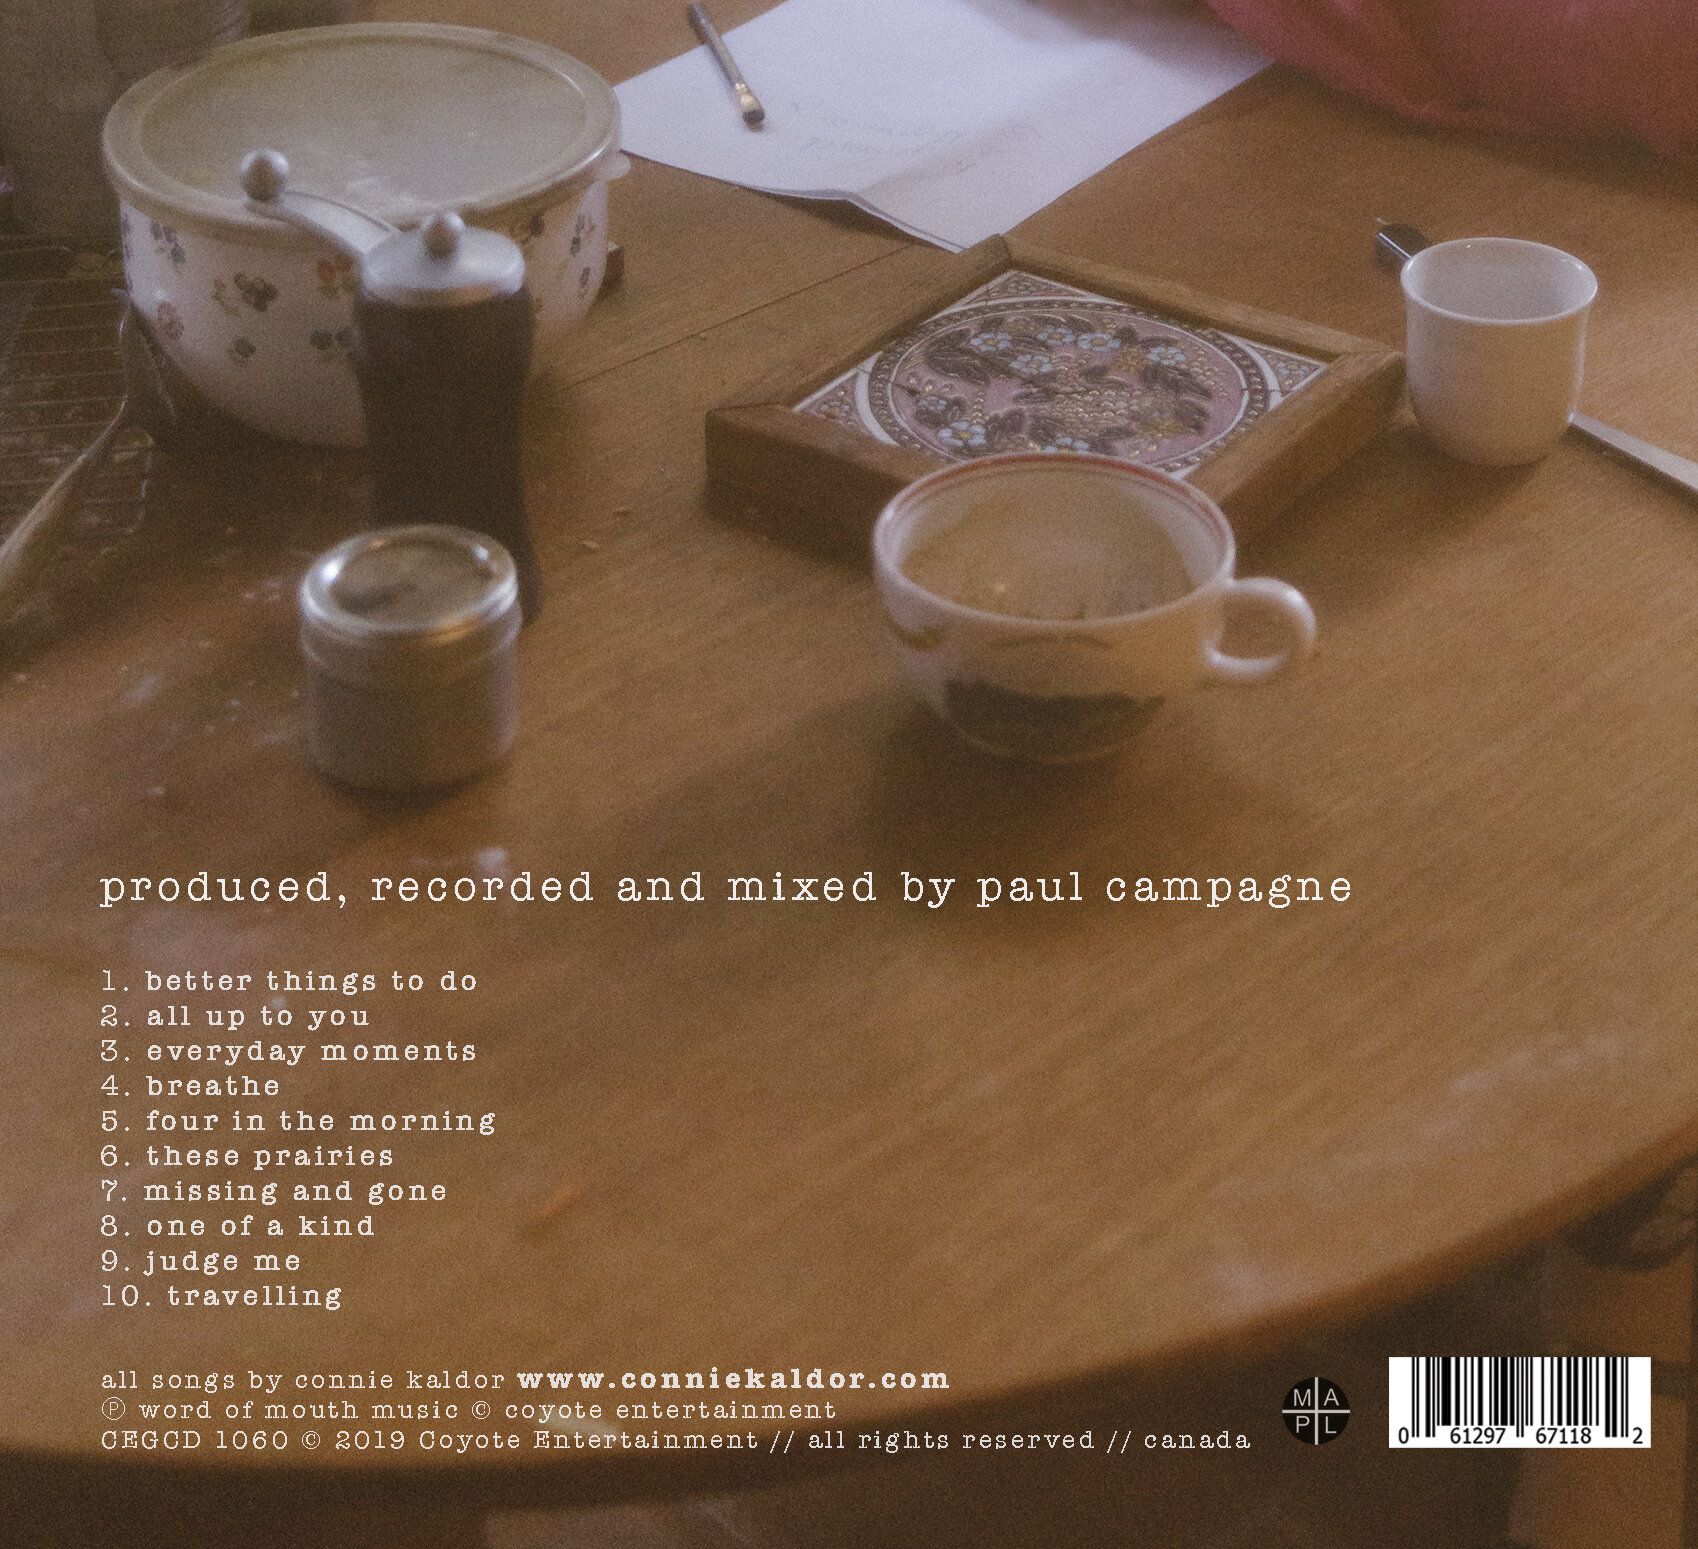 The back cover of the latest recording